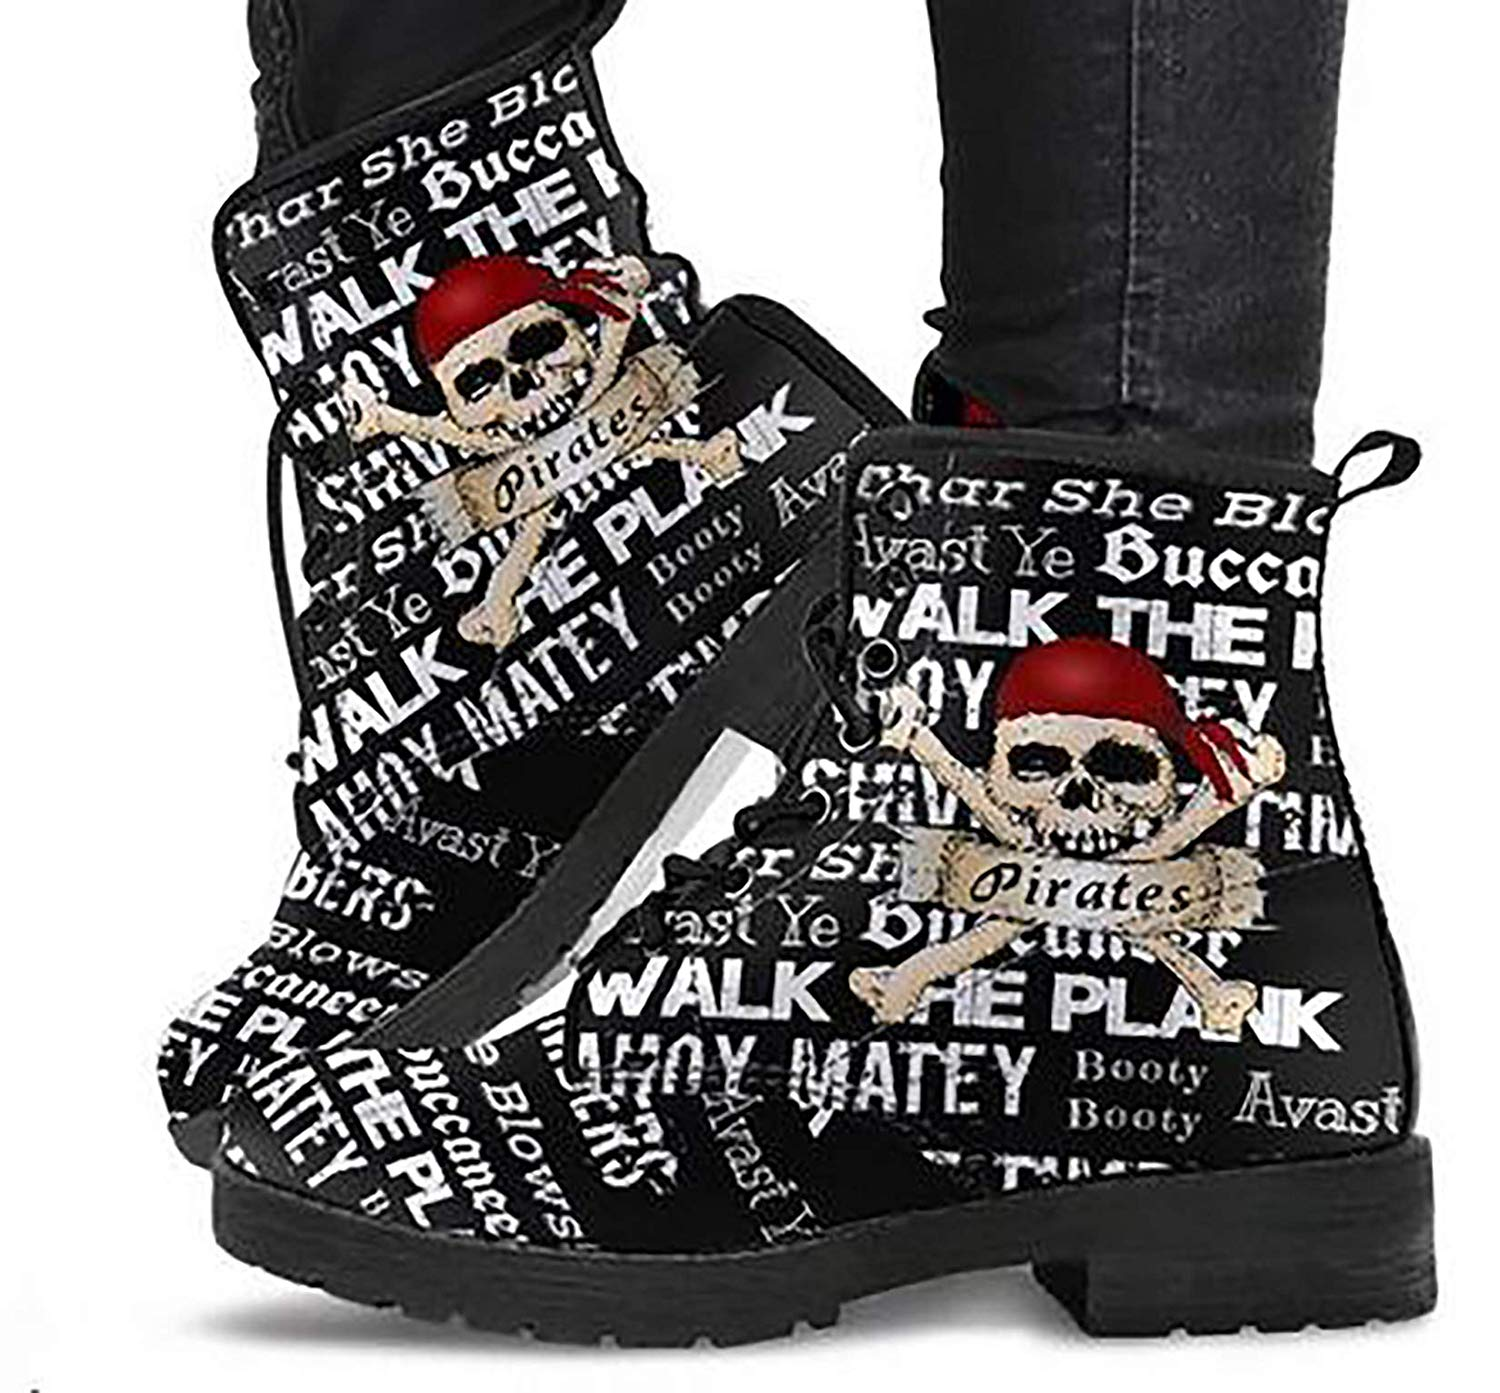 56ccf7a858e Cheap Pirate Boots, find Pirate Boots deals on line at Alibaba.com